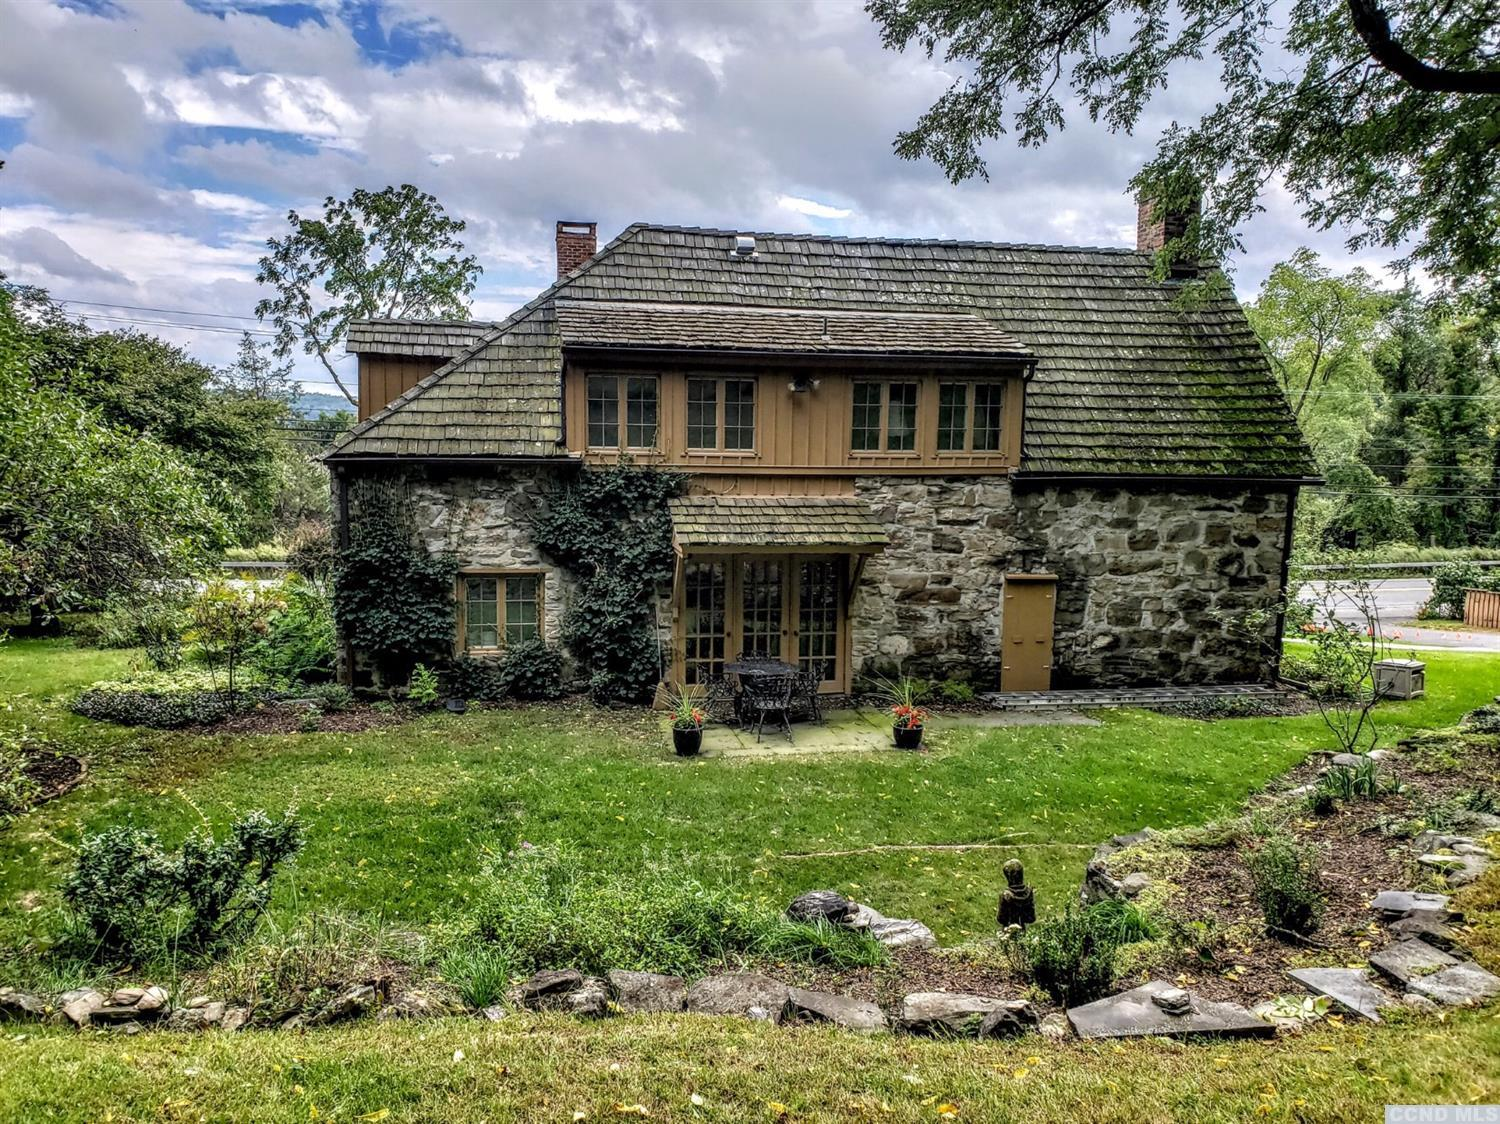 <b>This Colonial </b><span style=font-size: 13.3333px;><b>Stone</b></span><b>House was built in 1695 and is one of Columbia County's oldest </b><span style=font-size: 13.3333px;=><b>homes</b></span><b>. Located on Route 9G you have access to over 1000 ft.of road frontage with annual income from billboards leased for $6,000. This location has great potential either kept as a charming historical residence or a business or a combination of both. Located less than a mile to Hudson and 3mi. to Catskill. Not a house for those looking for seclusion. It is for those who love be part of the action in Hudson and the Catskills.</b><div><div><span 10pt;=style=font-size:><b>The house has wide board floors, exposed interior stone walls, chestnut beams,ga